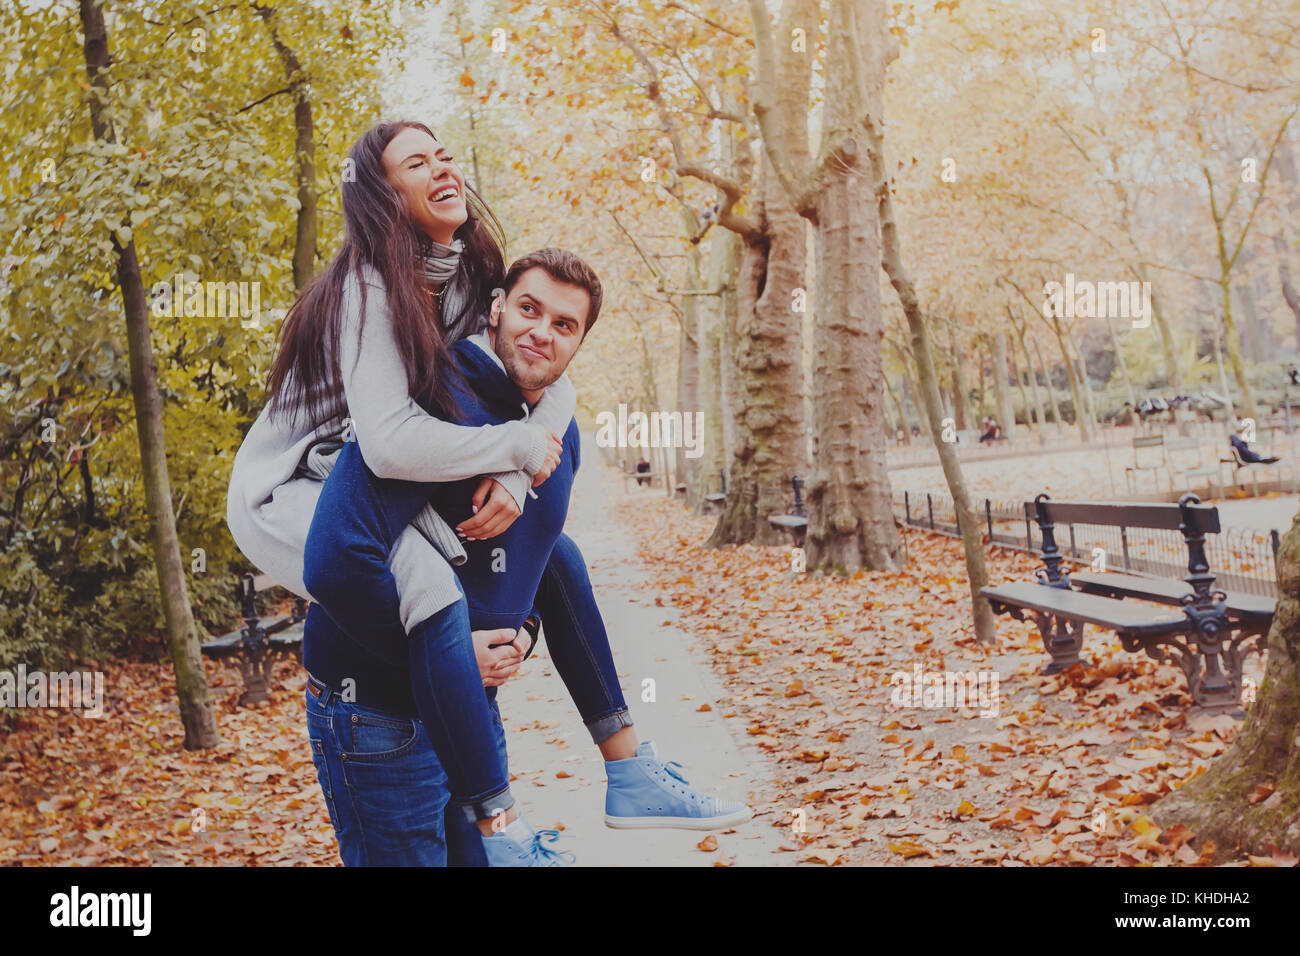 Man carrying woman piggyback, dating, young couple laughing in autumn park Photo Stock